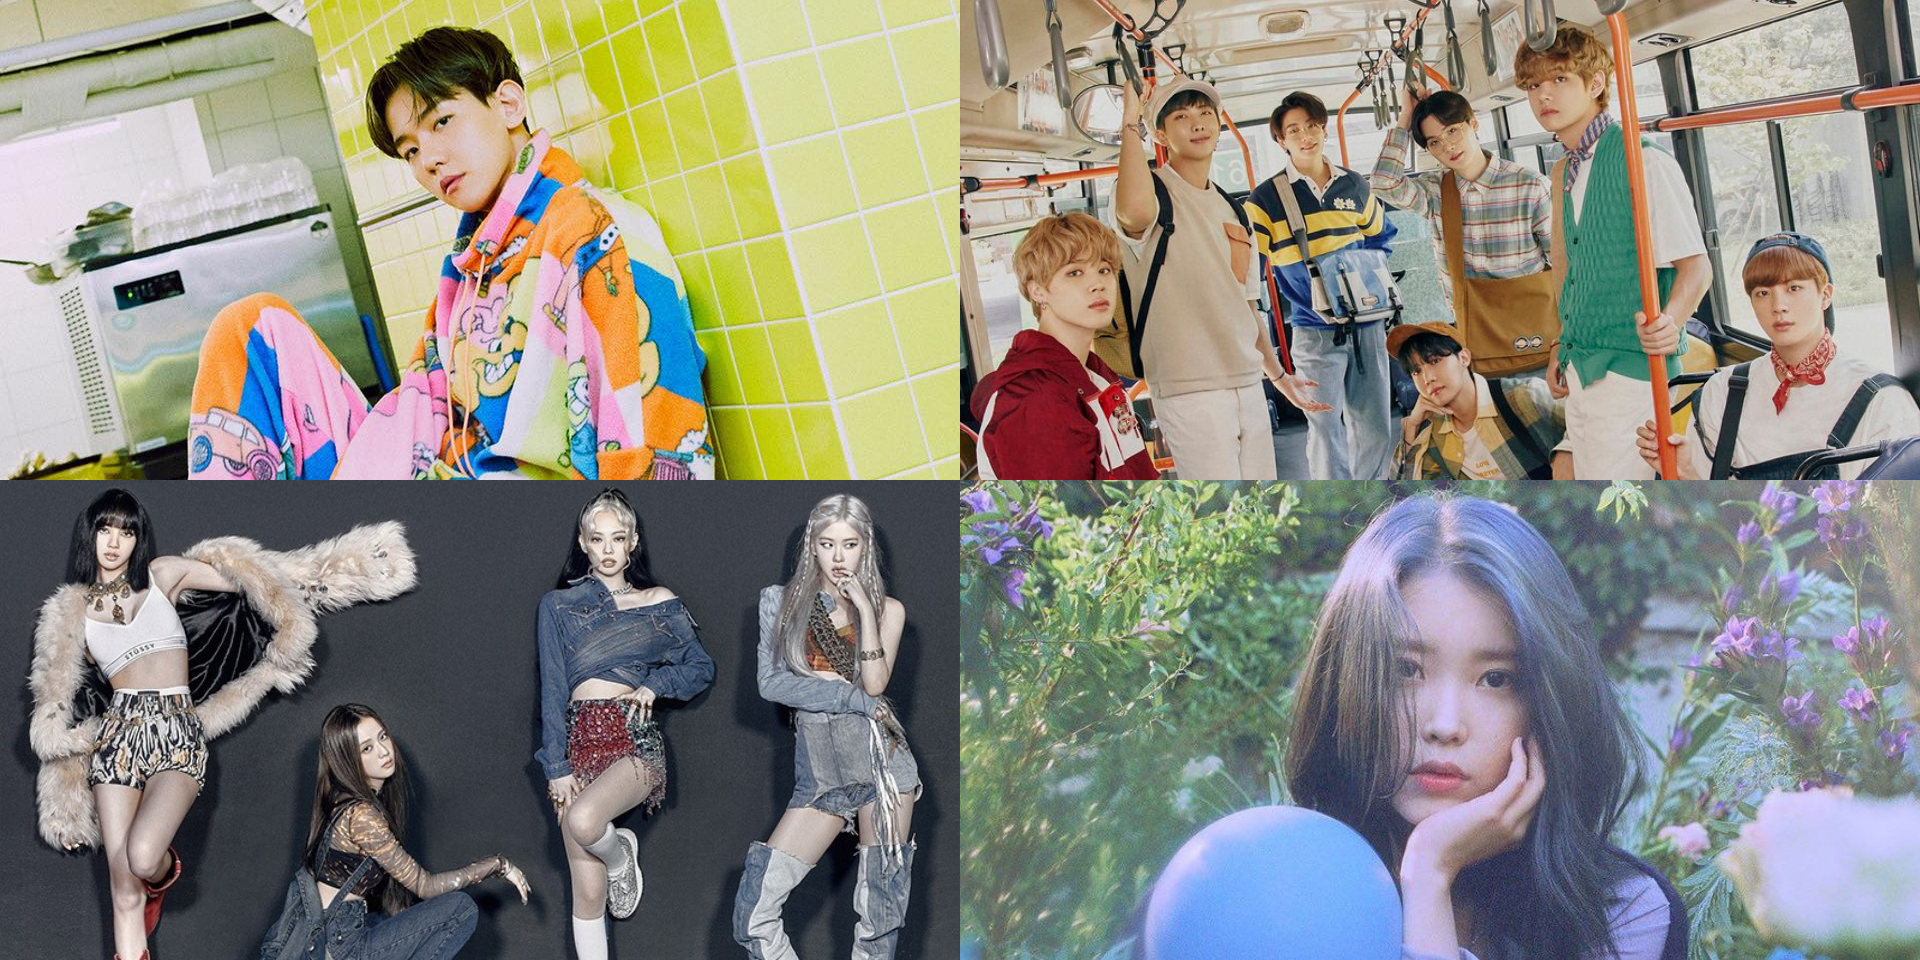 2020 Melon Music Awards announce Top 10 Artists – BLACKPINK, BTS, EXO's Baekhyun, IU, and more, plus full list of nominees